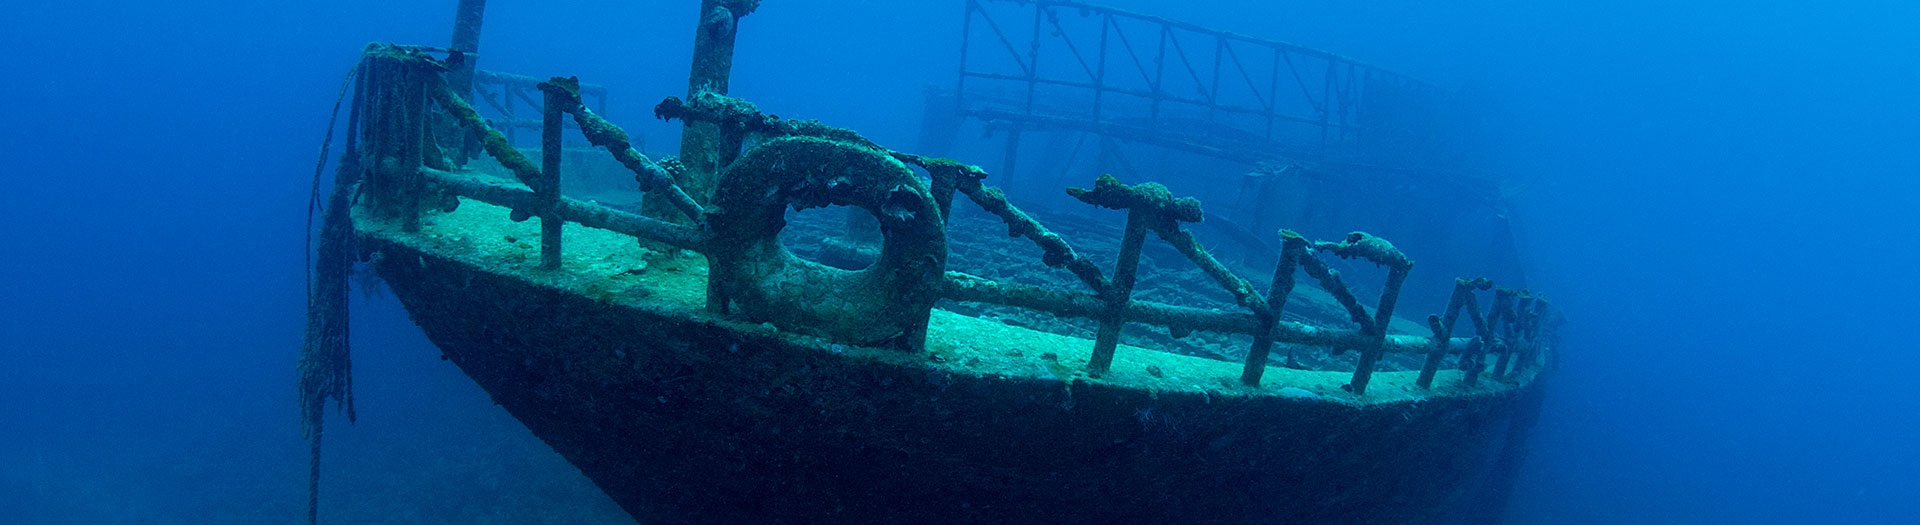 Shipwrecks diving and scubadiving in Egypt